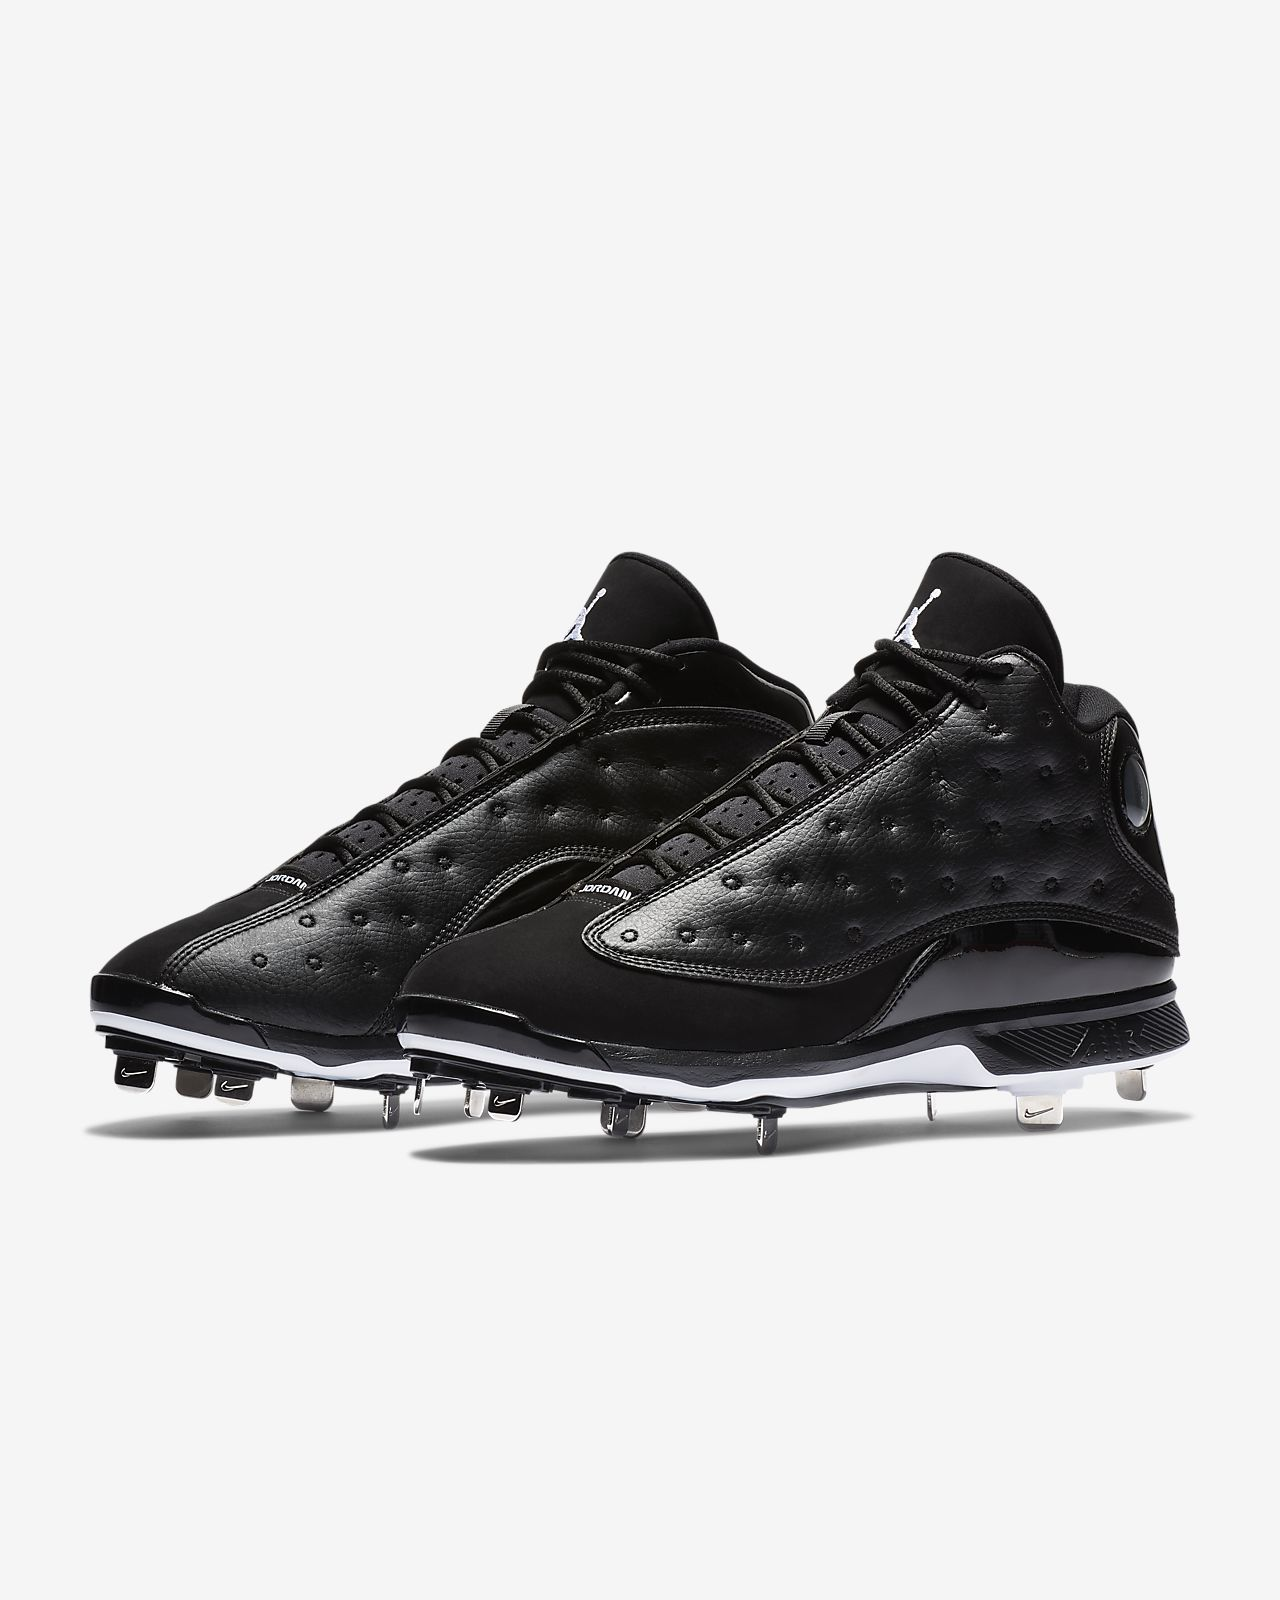 d38e6e0edf79 Air Jordan XIII Retro Metal Men's Baseball Cleat. Nike.com